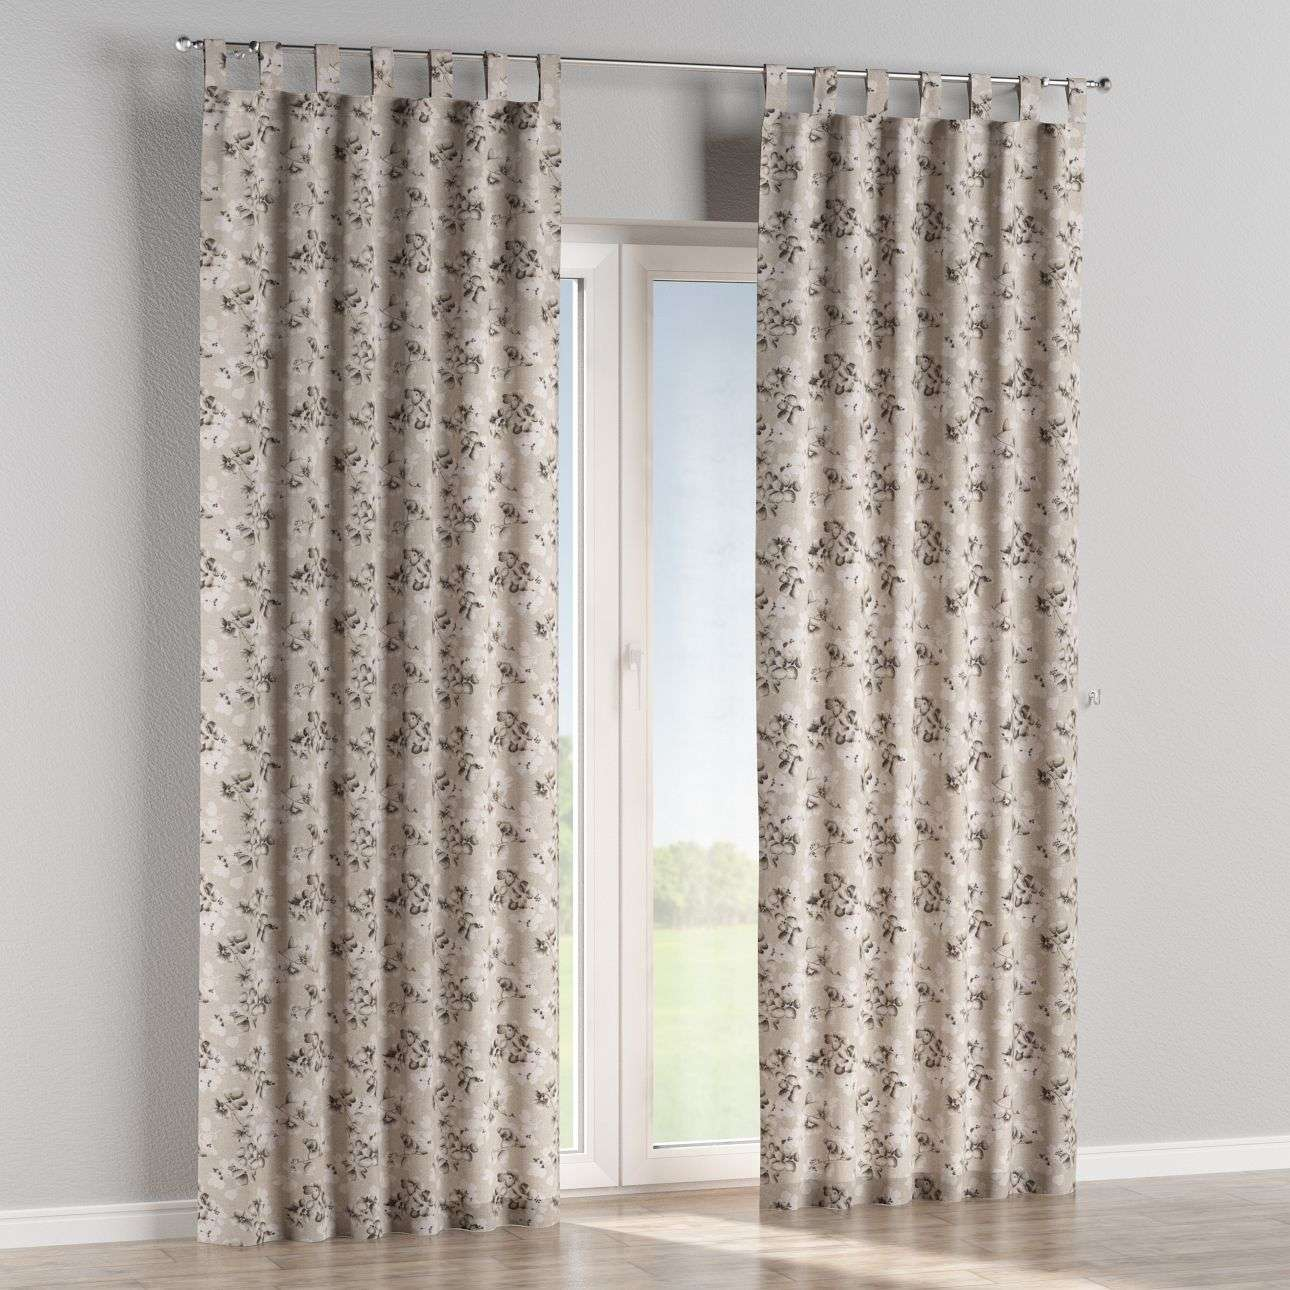 Tab top curtains 130 × 260 cm (51 × 102 inch) in collection Rustica, fabric: 138-14